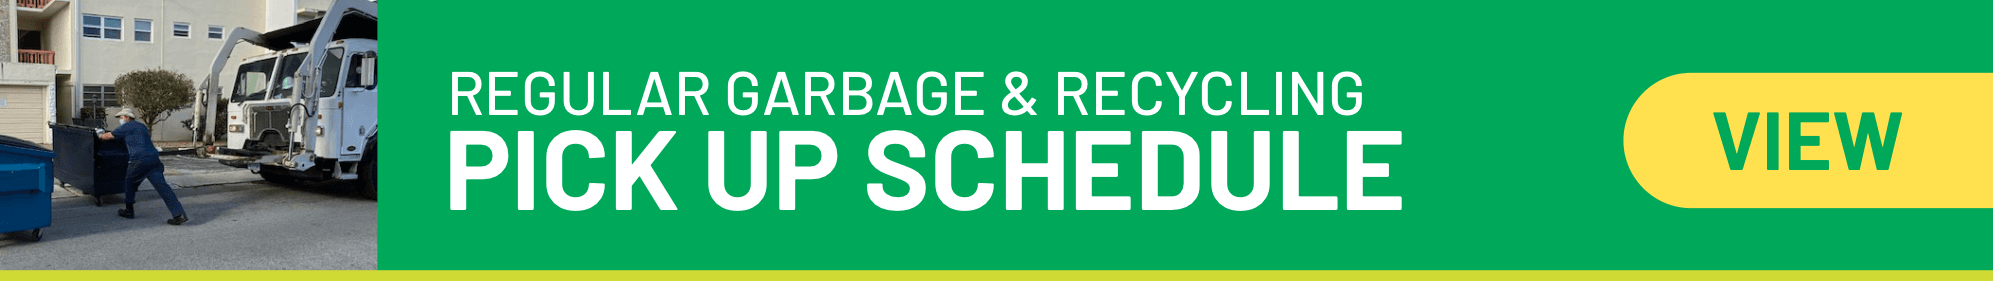 REGULAR GARBAGE & RECYCLING PICK UP SCHEDULE